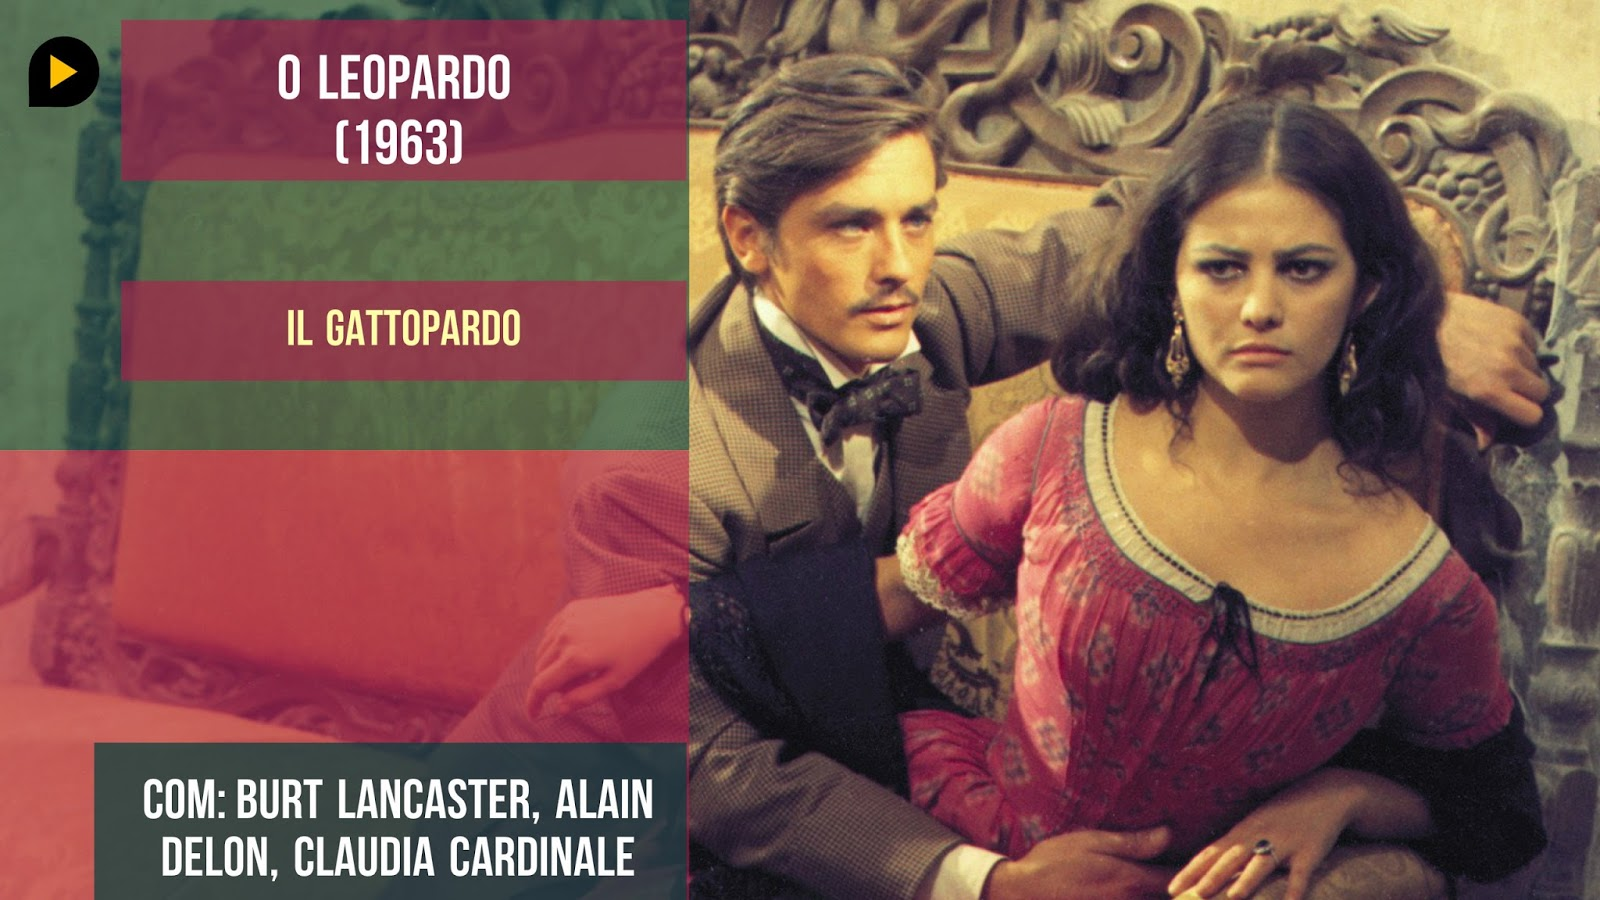 Filmes De Pornochanchada pertaining to luchino visconti - 10 filmes essenciais - tudosobreseufilme